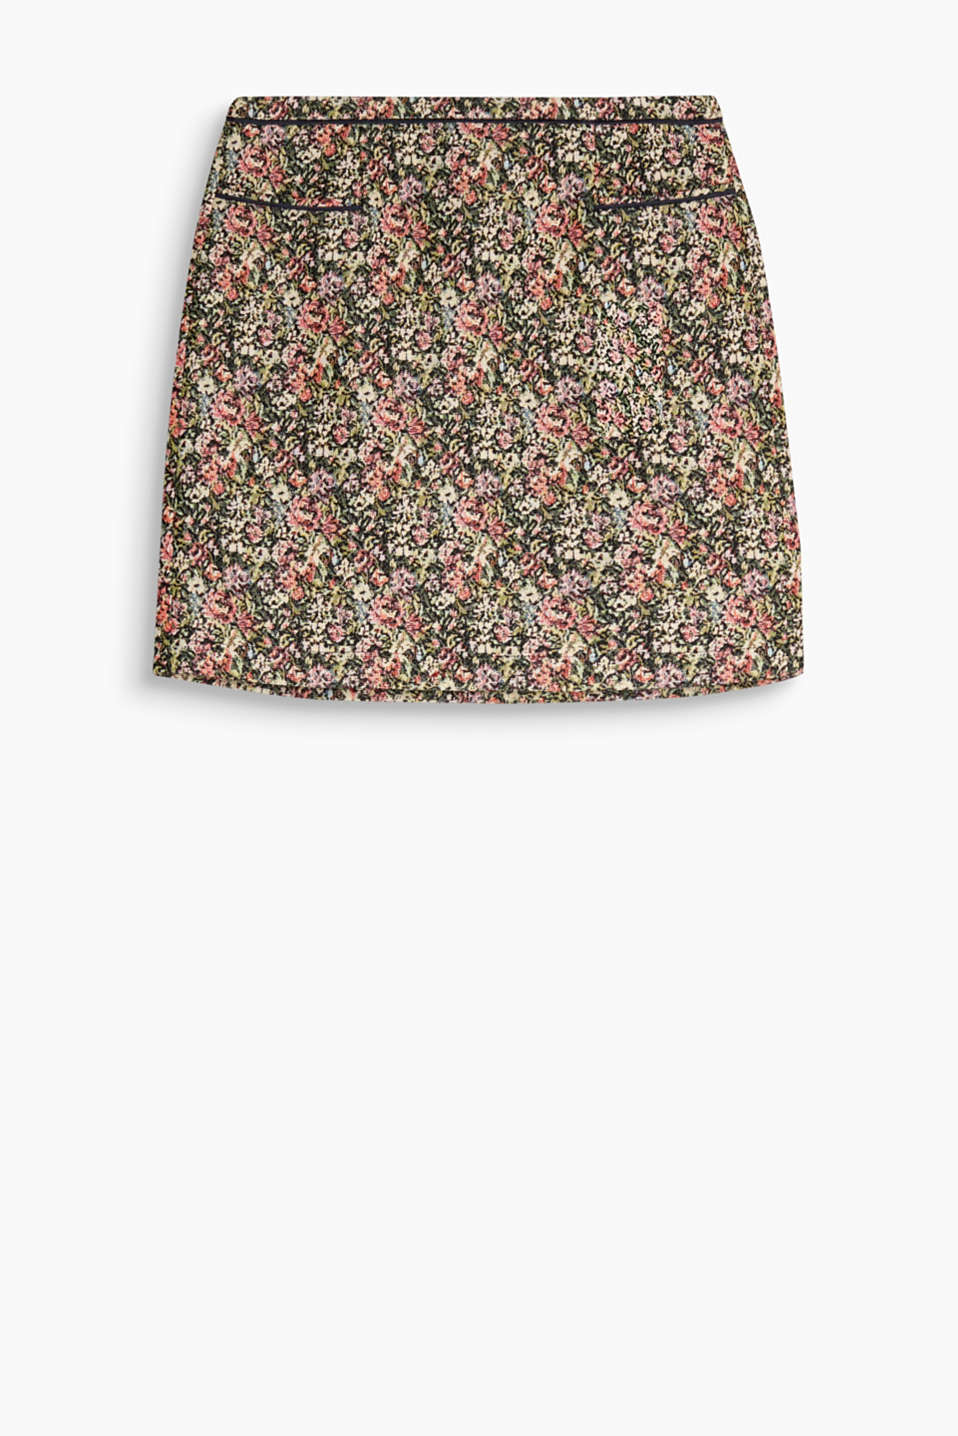 Elegant brocade looks put a new spin on floral patterns: short skirt in floral jacquard fabric